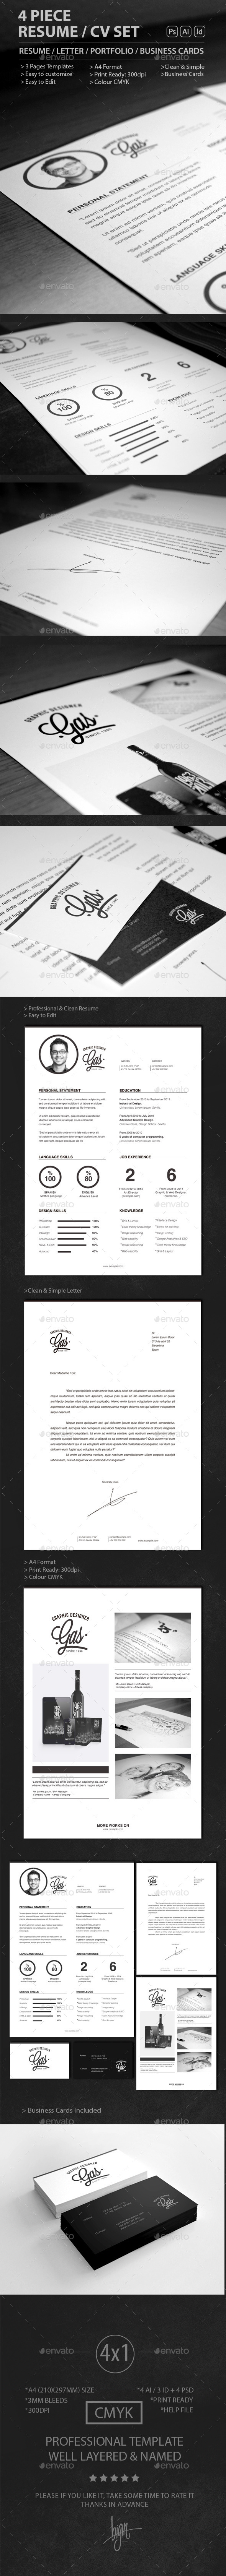 4 Piece Resume / CV SET